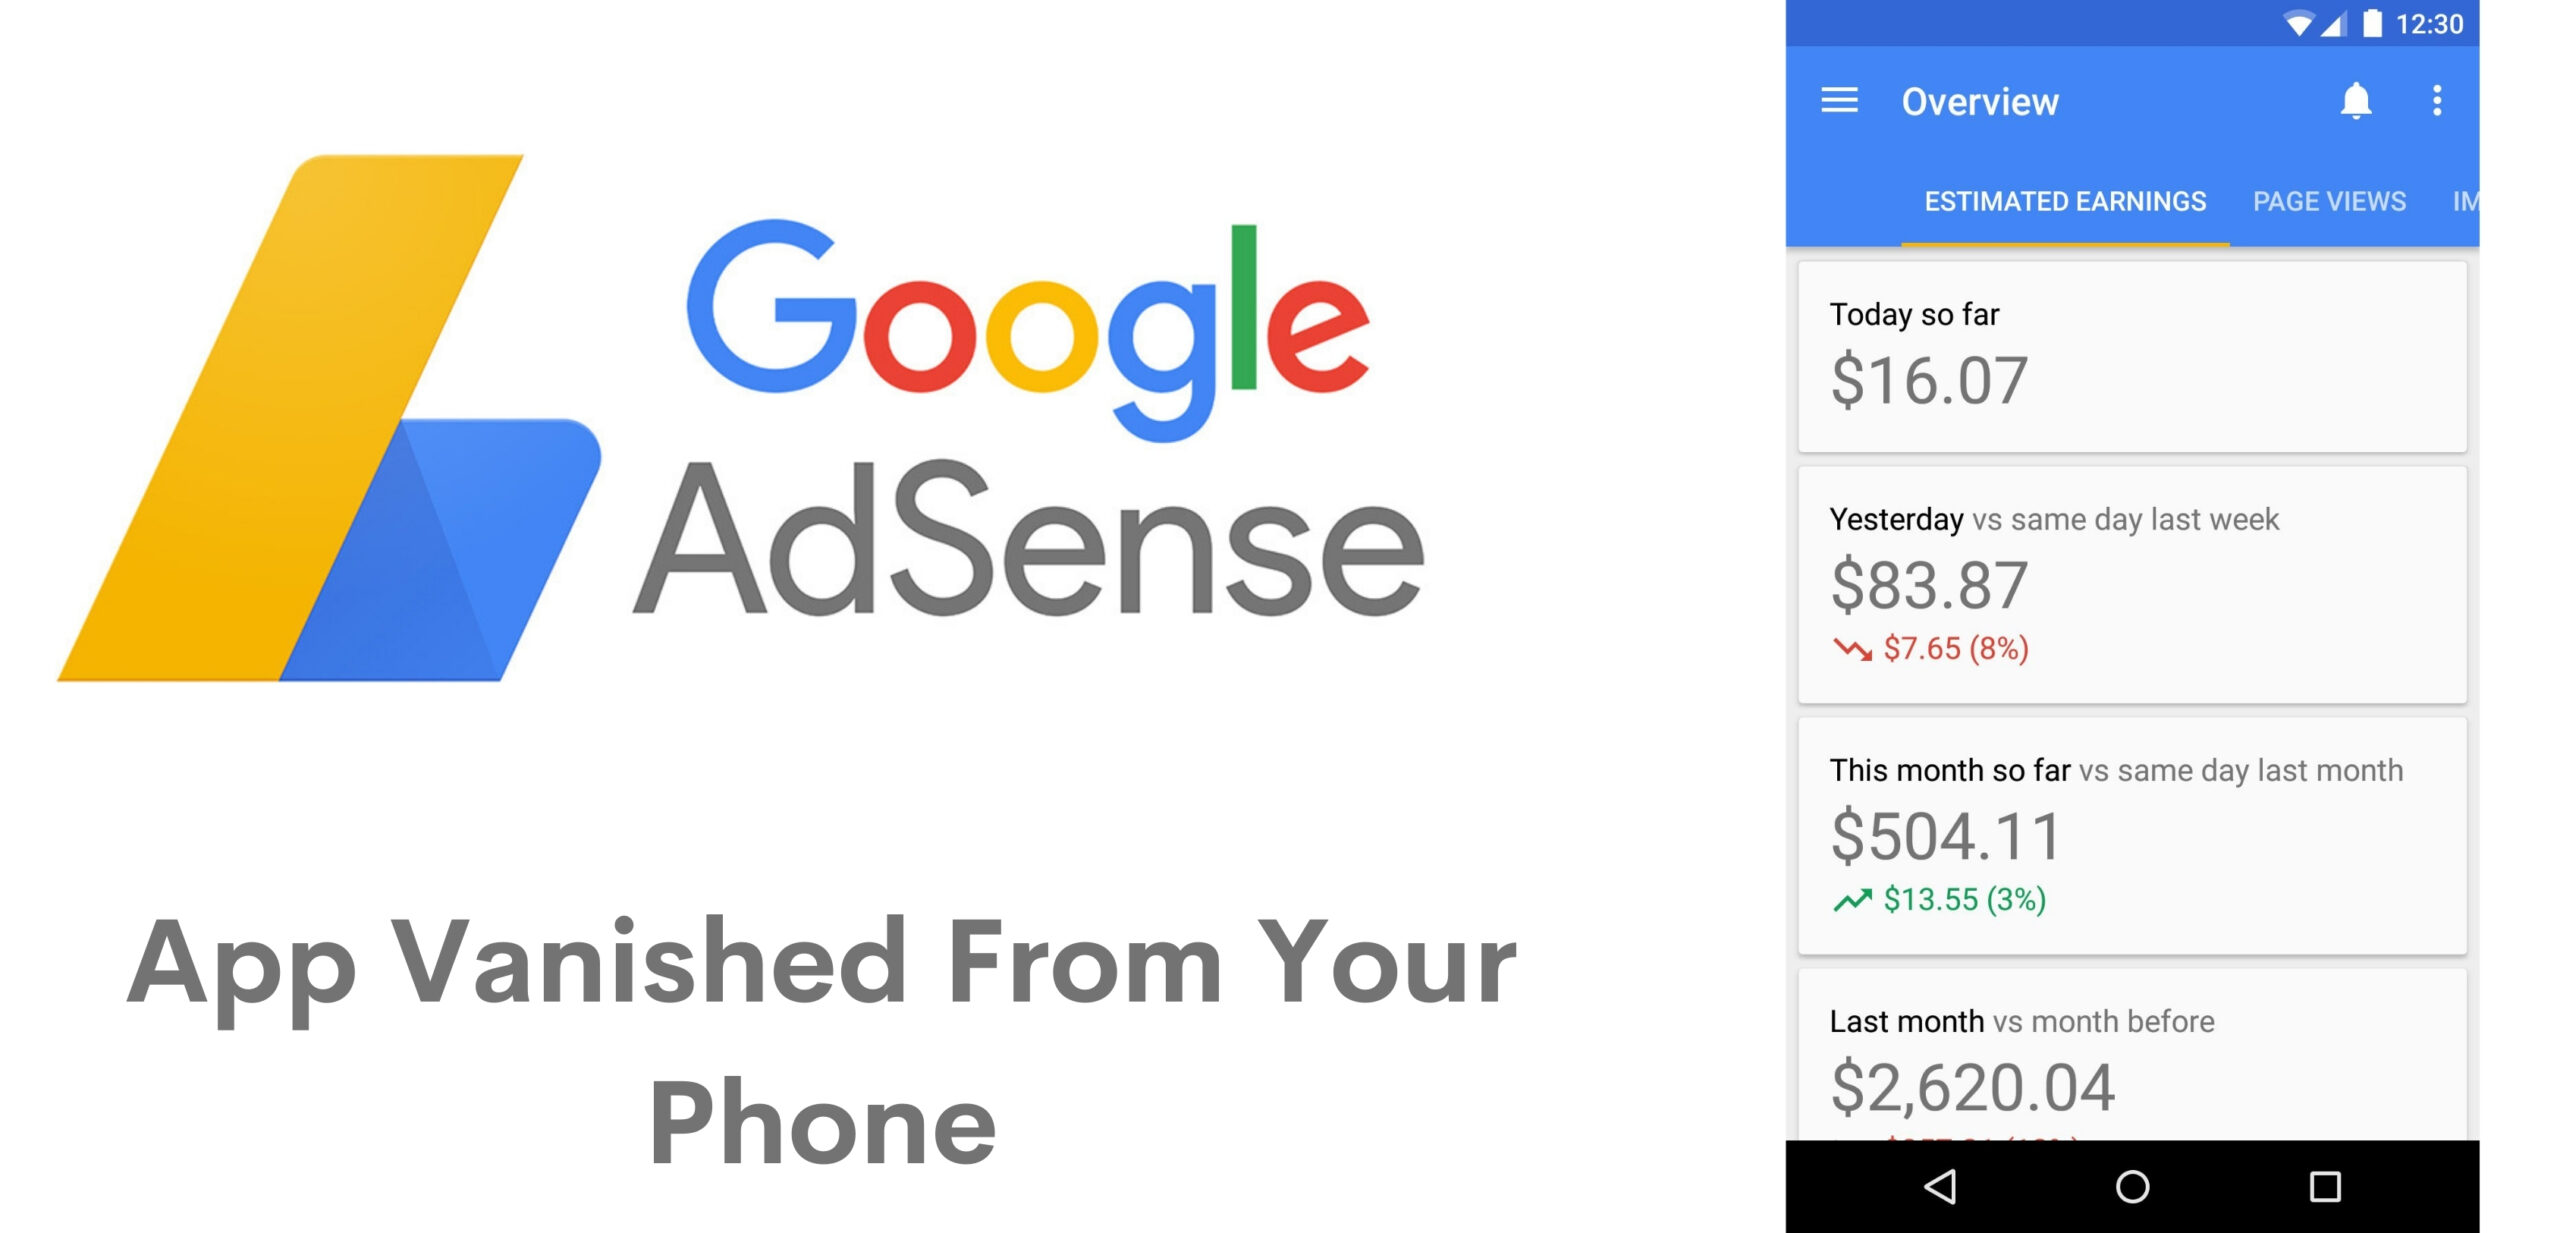 Google AdSense for Android app stops working